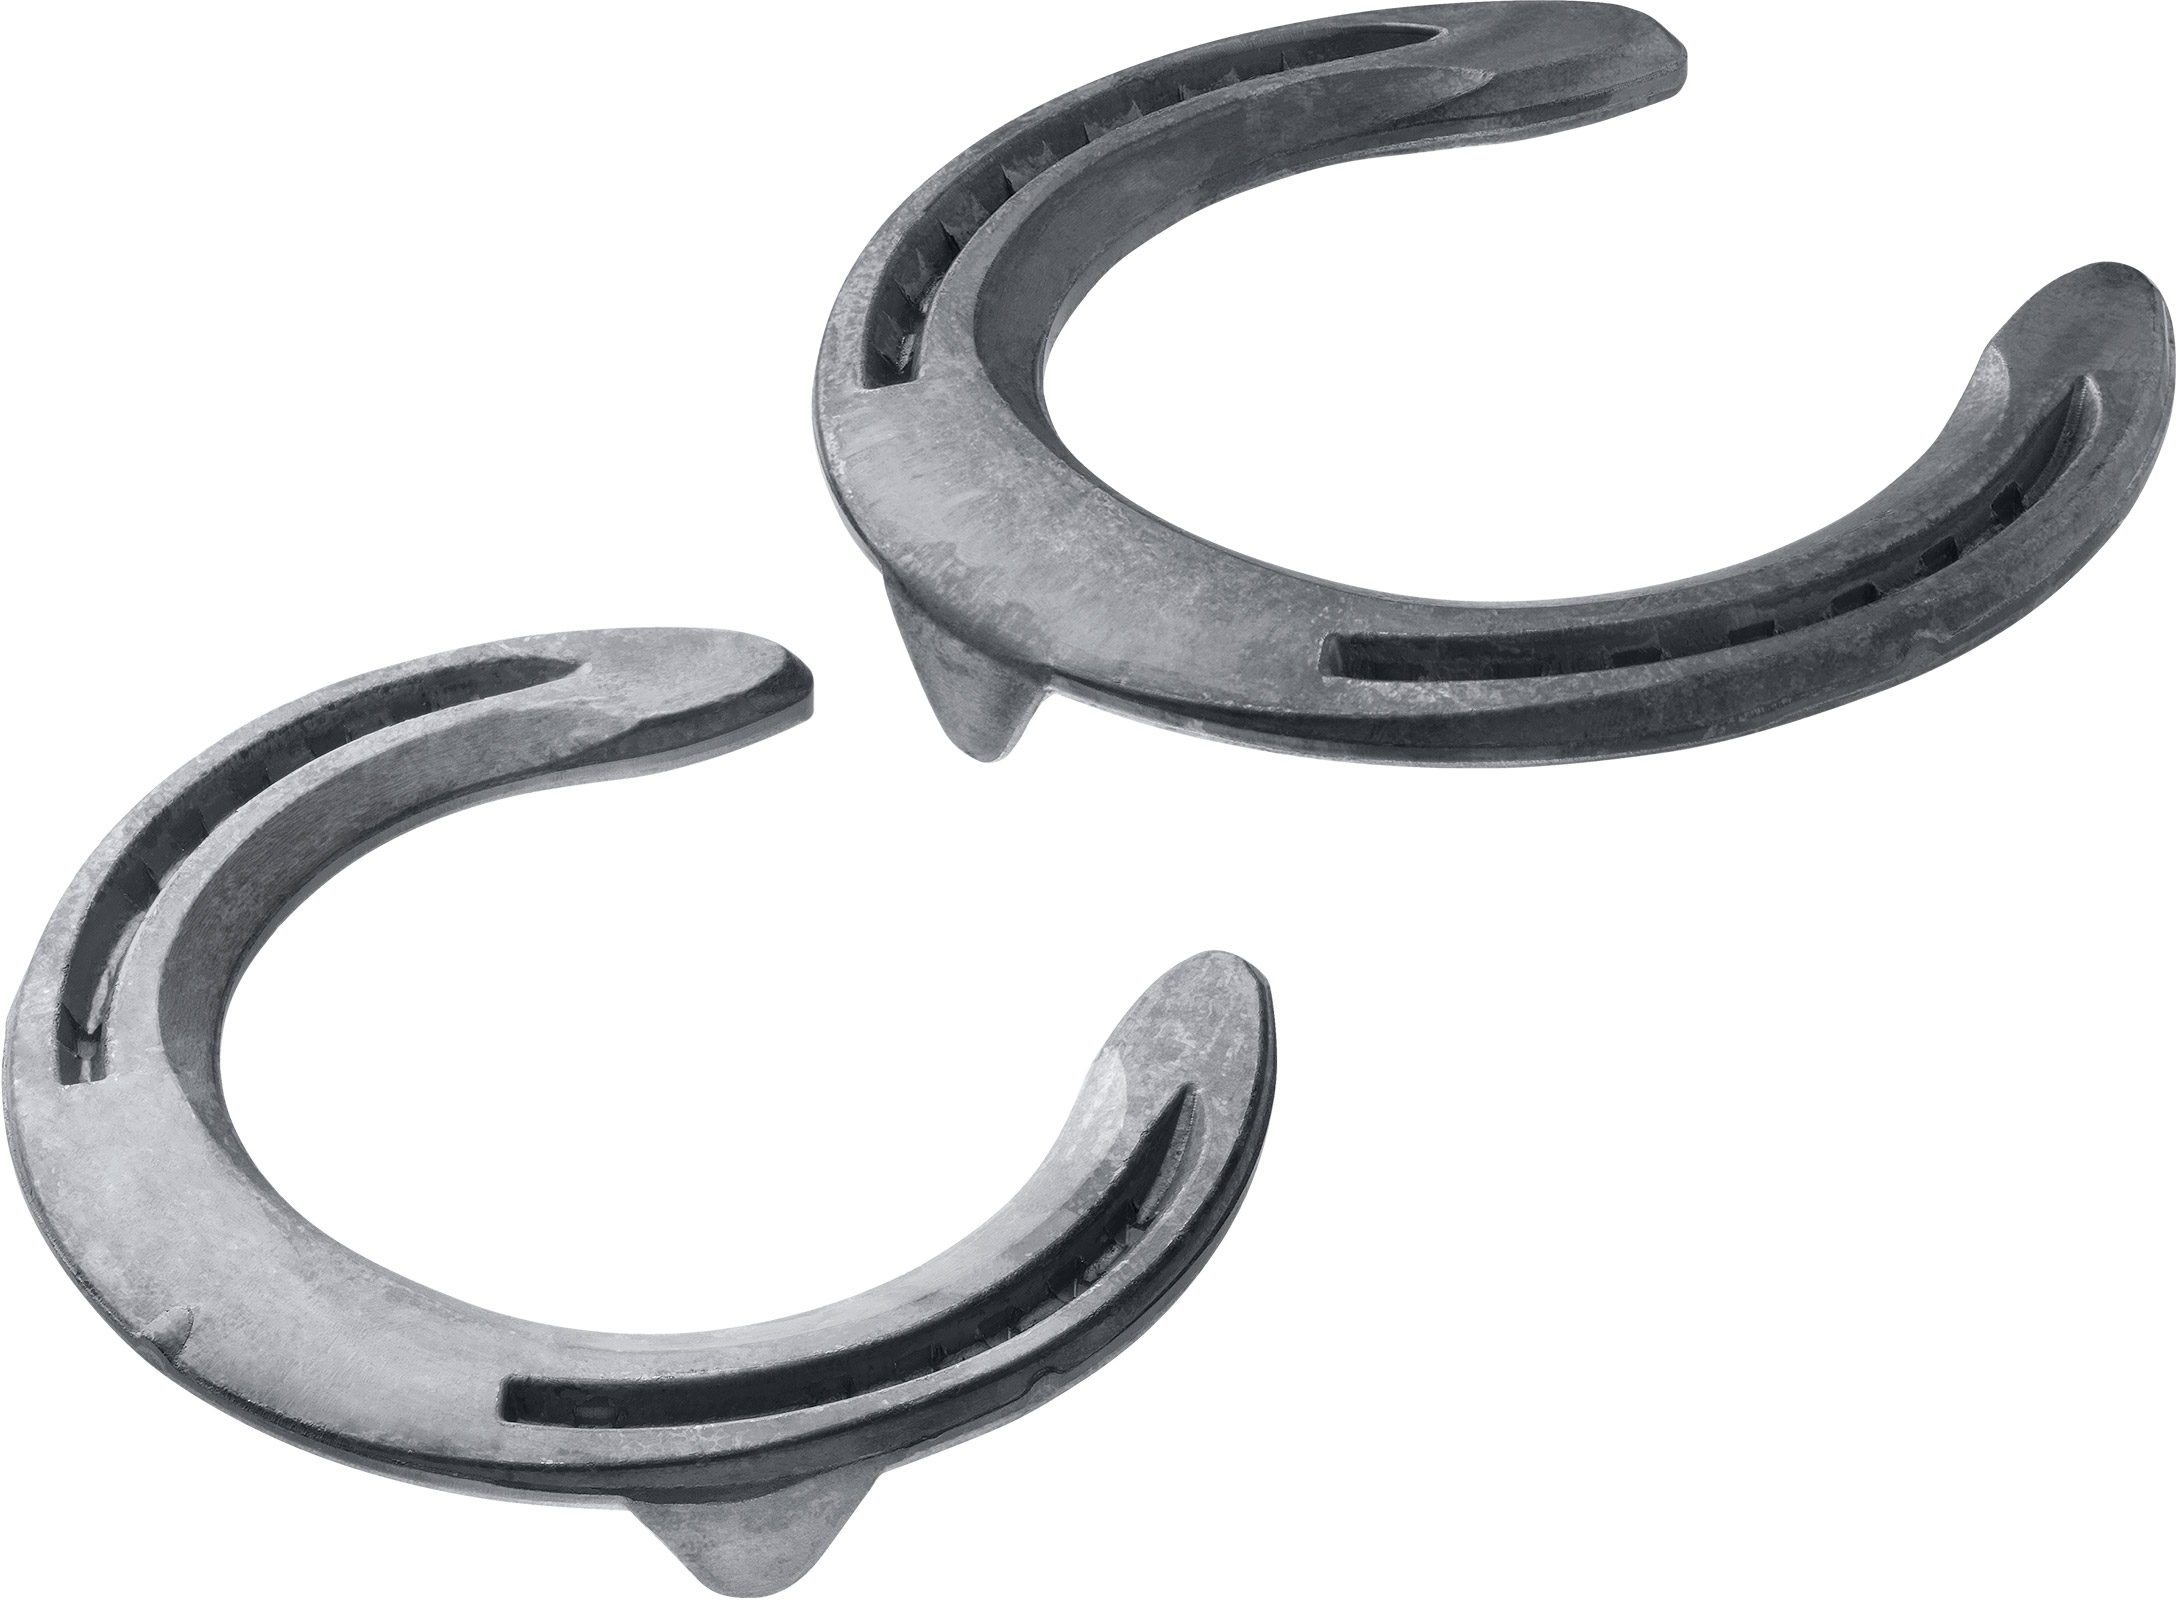 St. Croix Concorde Equi-Librium horseshoes, front toe clip and side clips, bottom side view